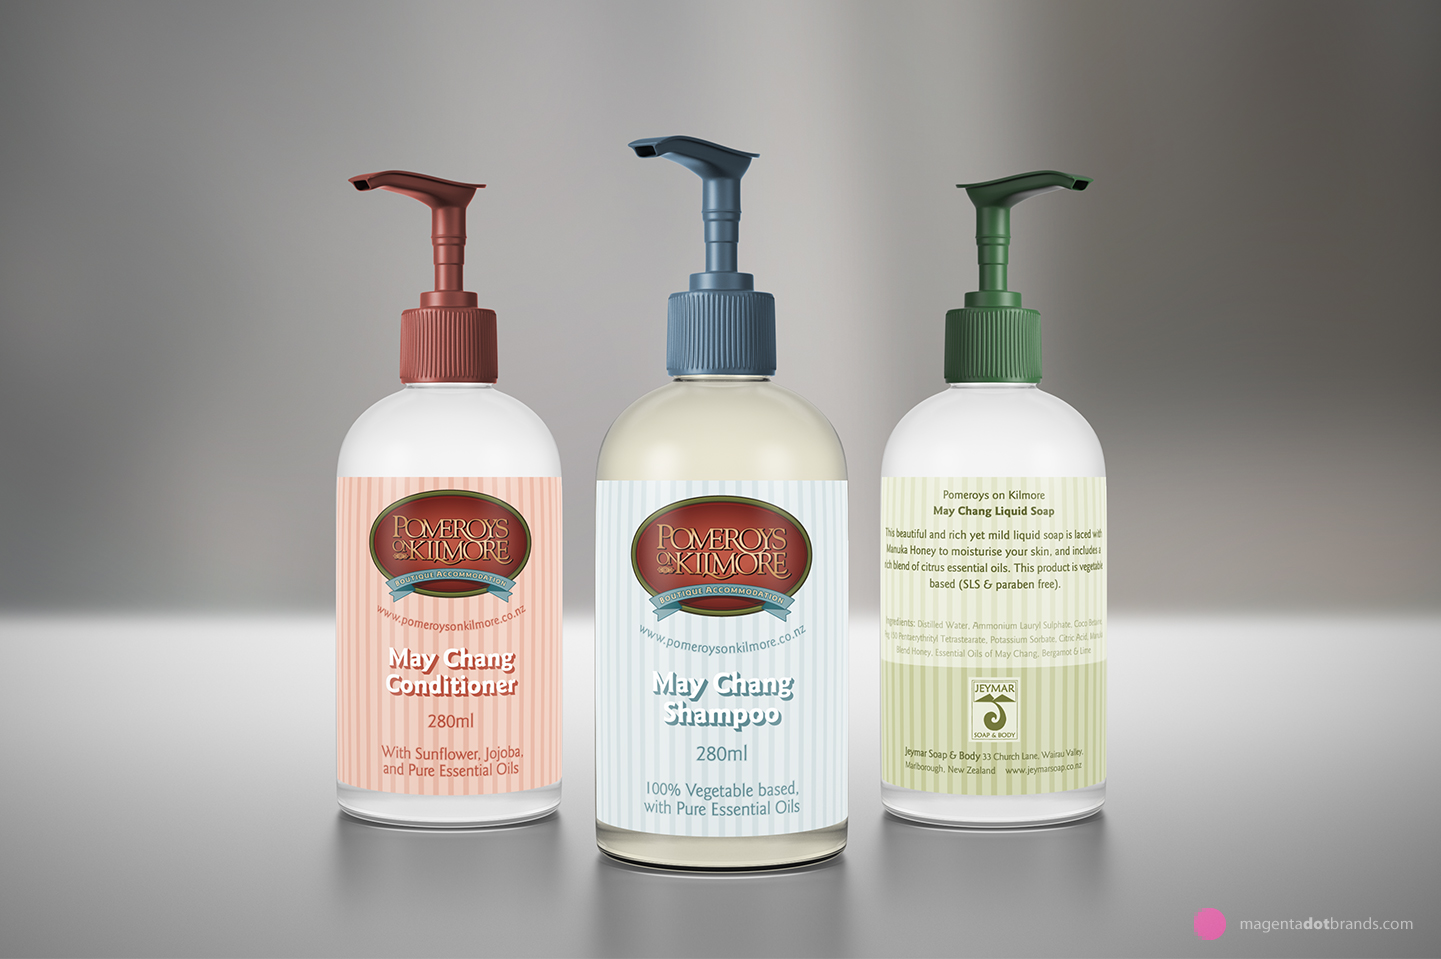 Pomeroy's on Kilmore Boutique Accomodation custom bathroom product range packaging.